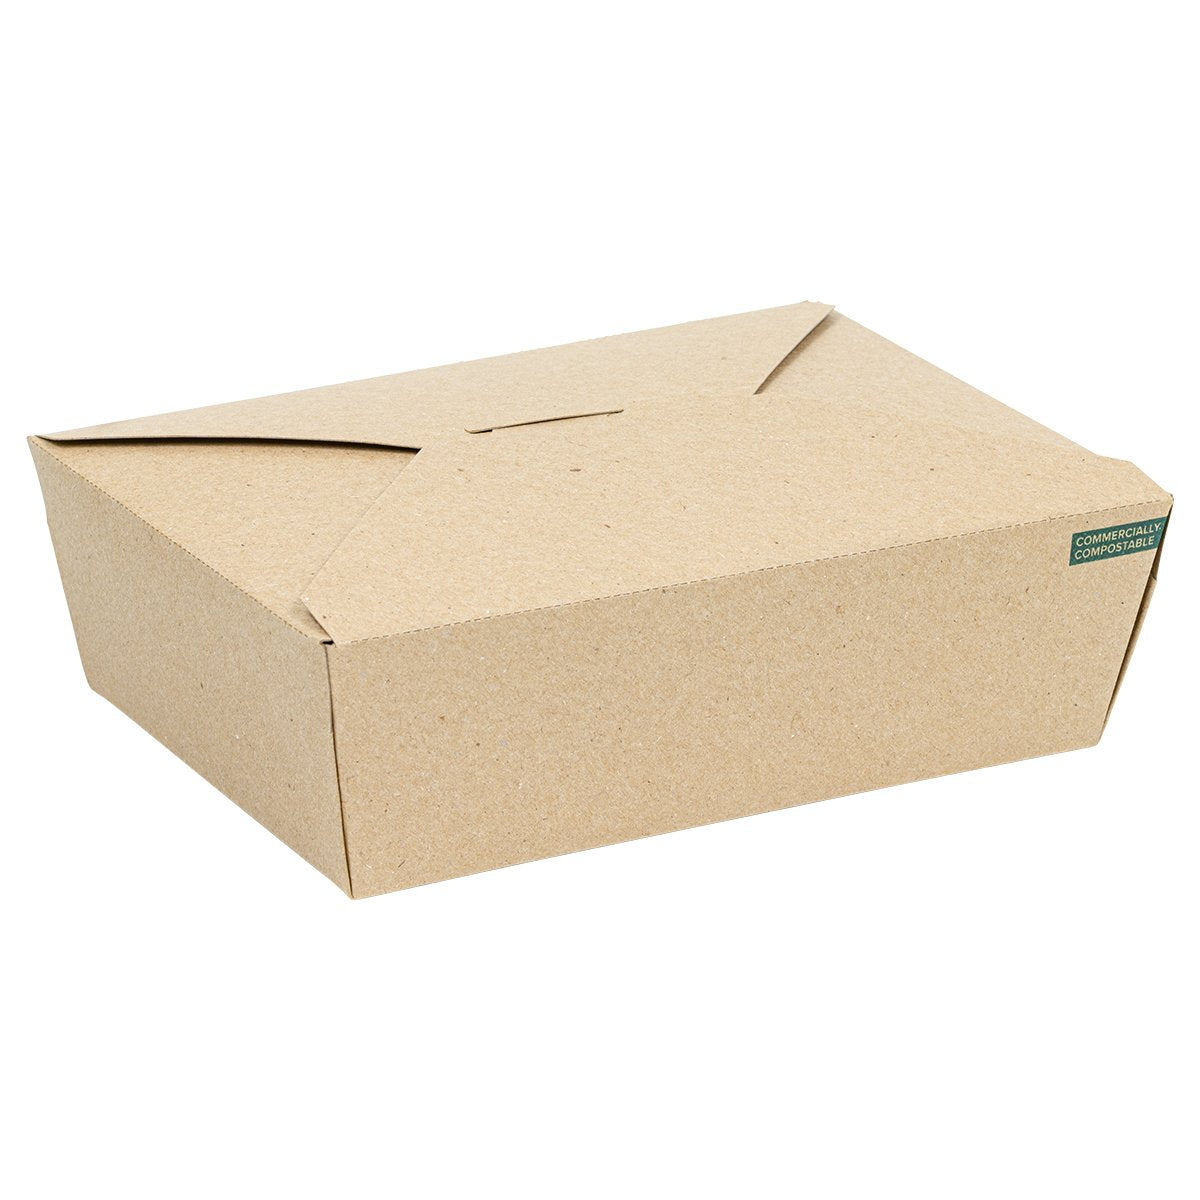 #3 Innobox 7.75x5.5x2.5 Kraft Food Carton